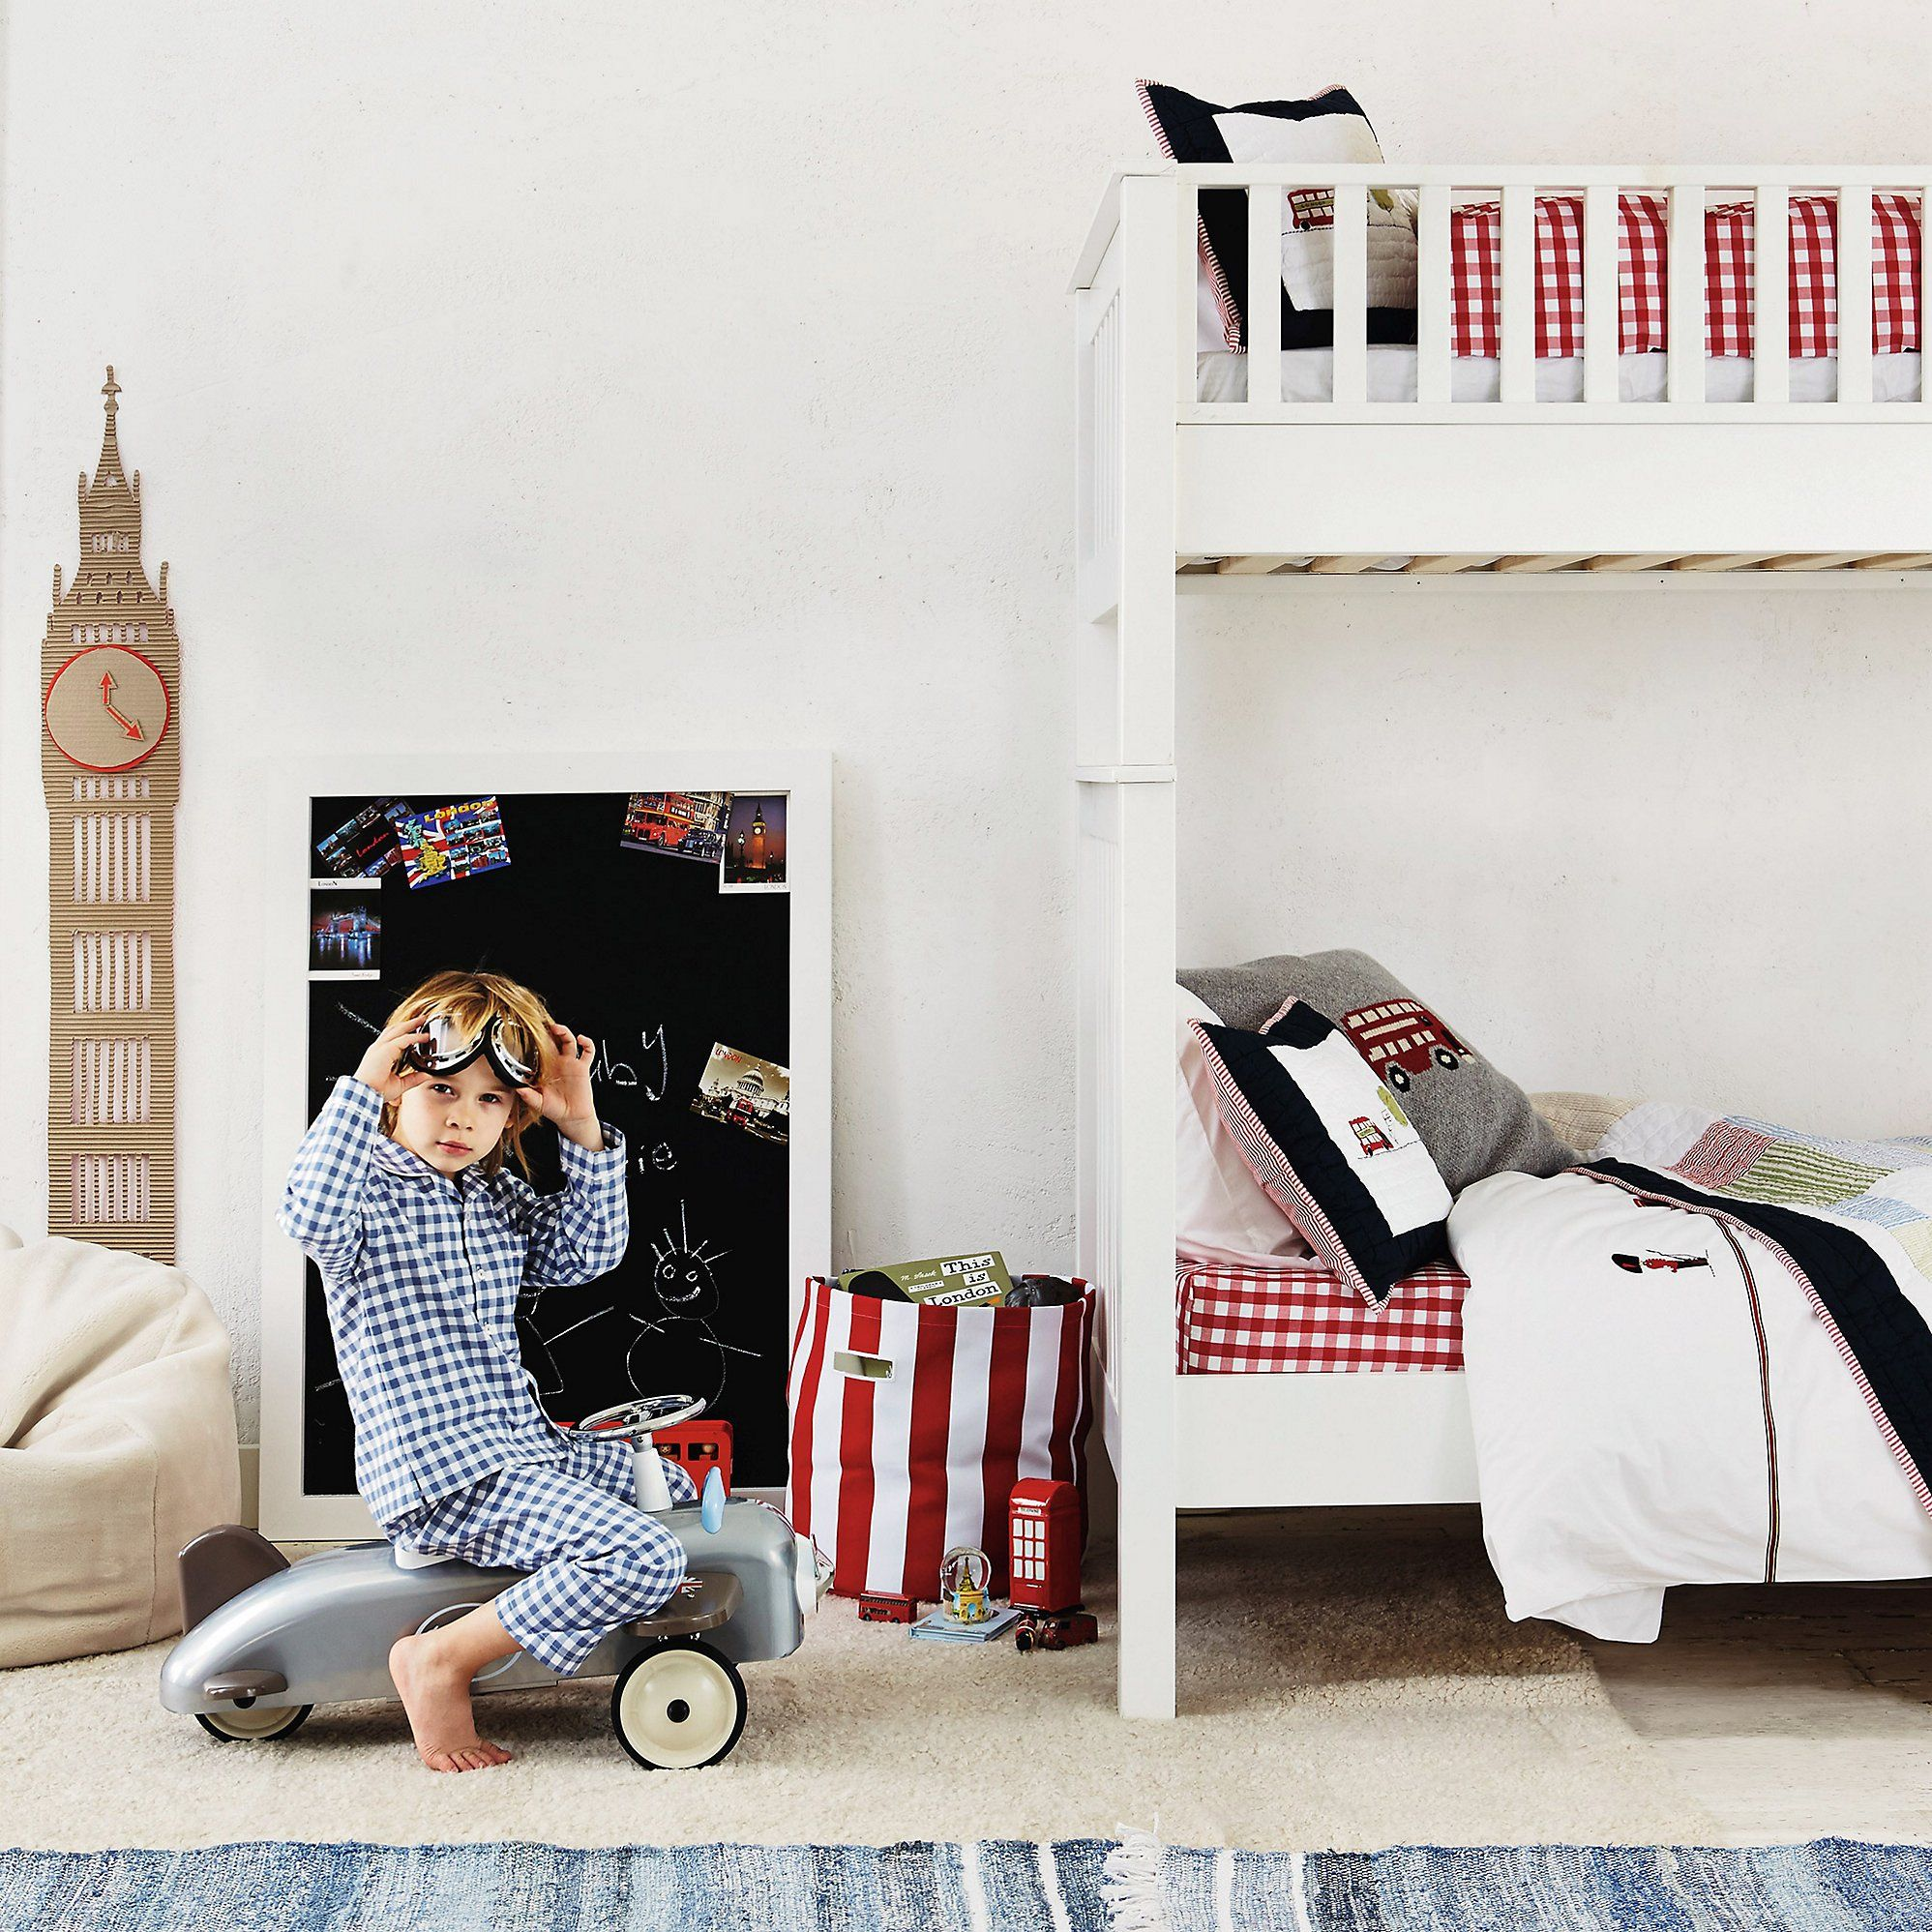 London Bed Linen From The White Company Childrens Bed Linen London Bedroom Themes The White Company